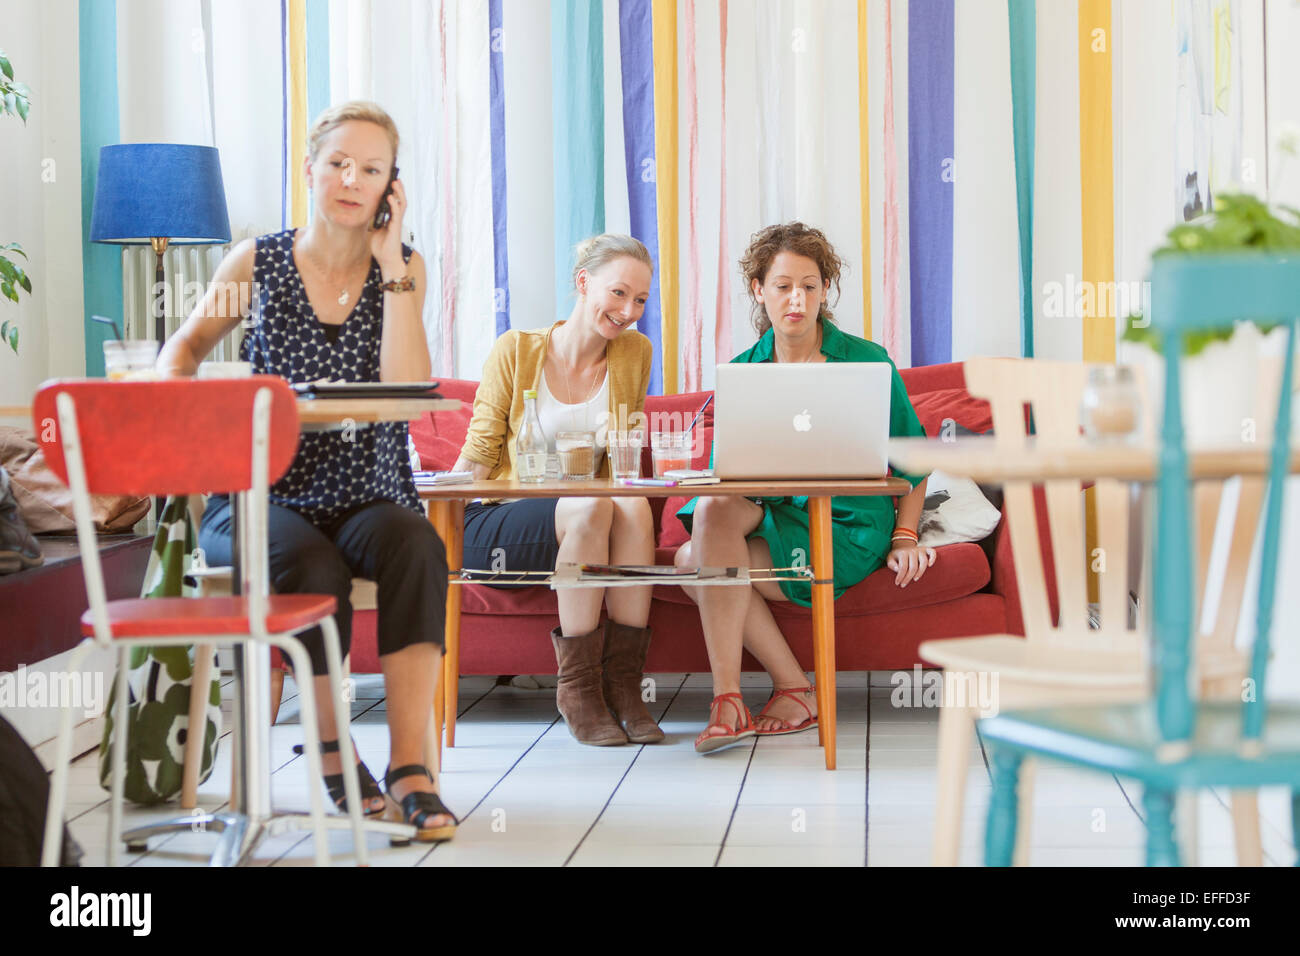 Full length of women using technologies in coffee shop - Stock Image